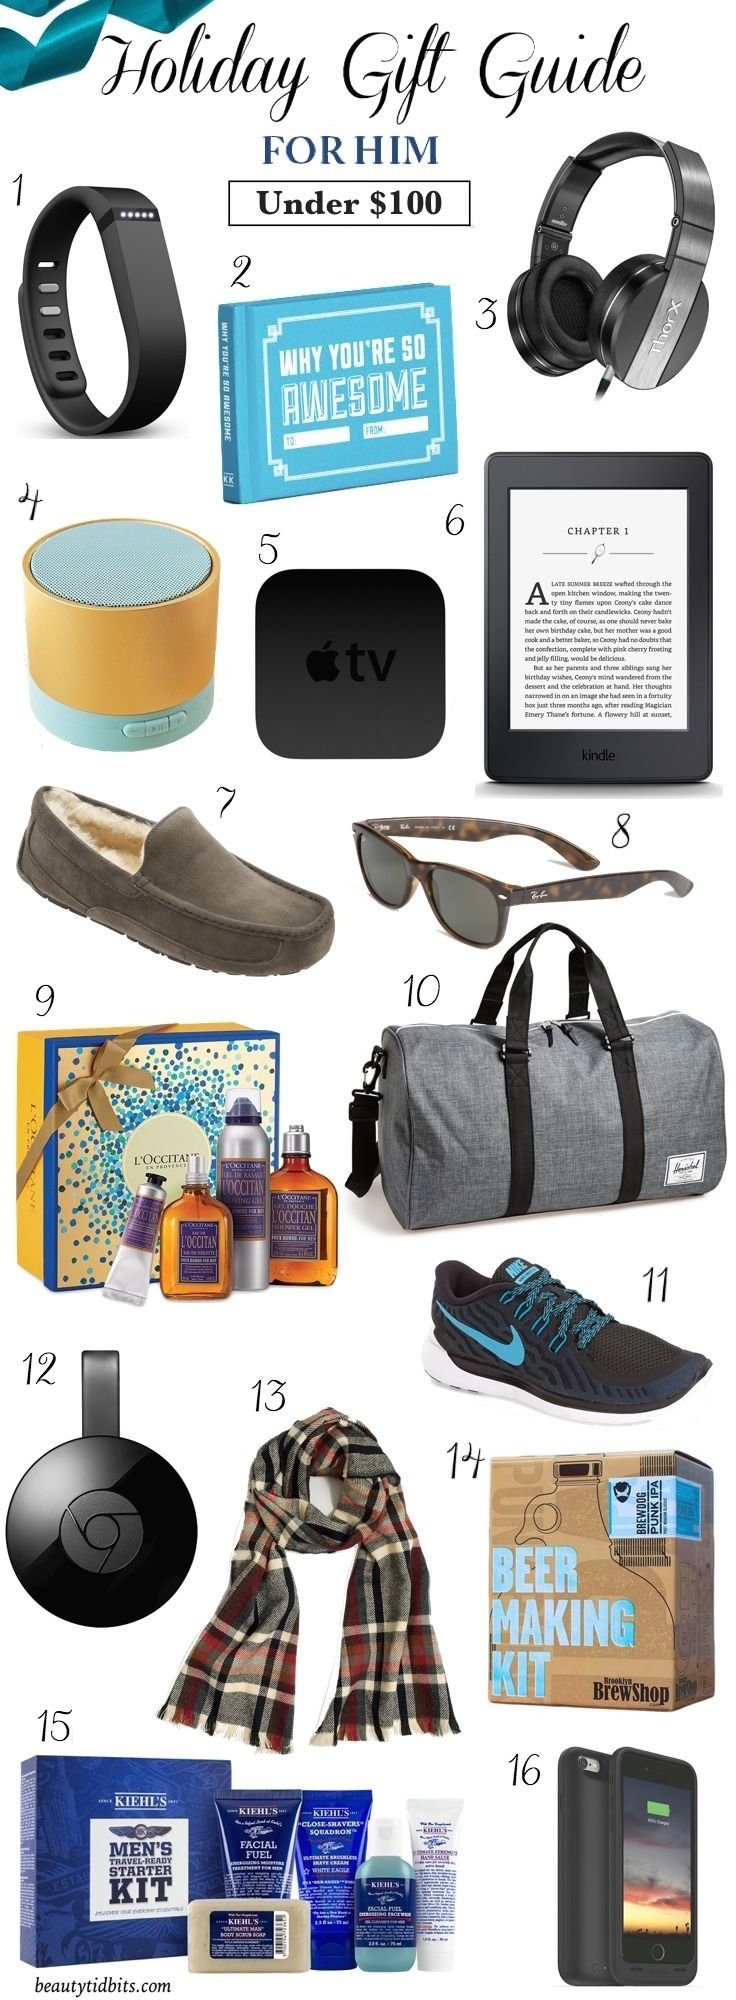 10 Pretty Christmas List Ideas For Guys 126 best holiday gift giving images on pinterest christmas 2 2020